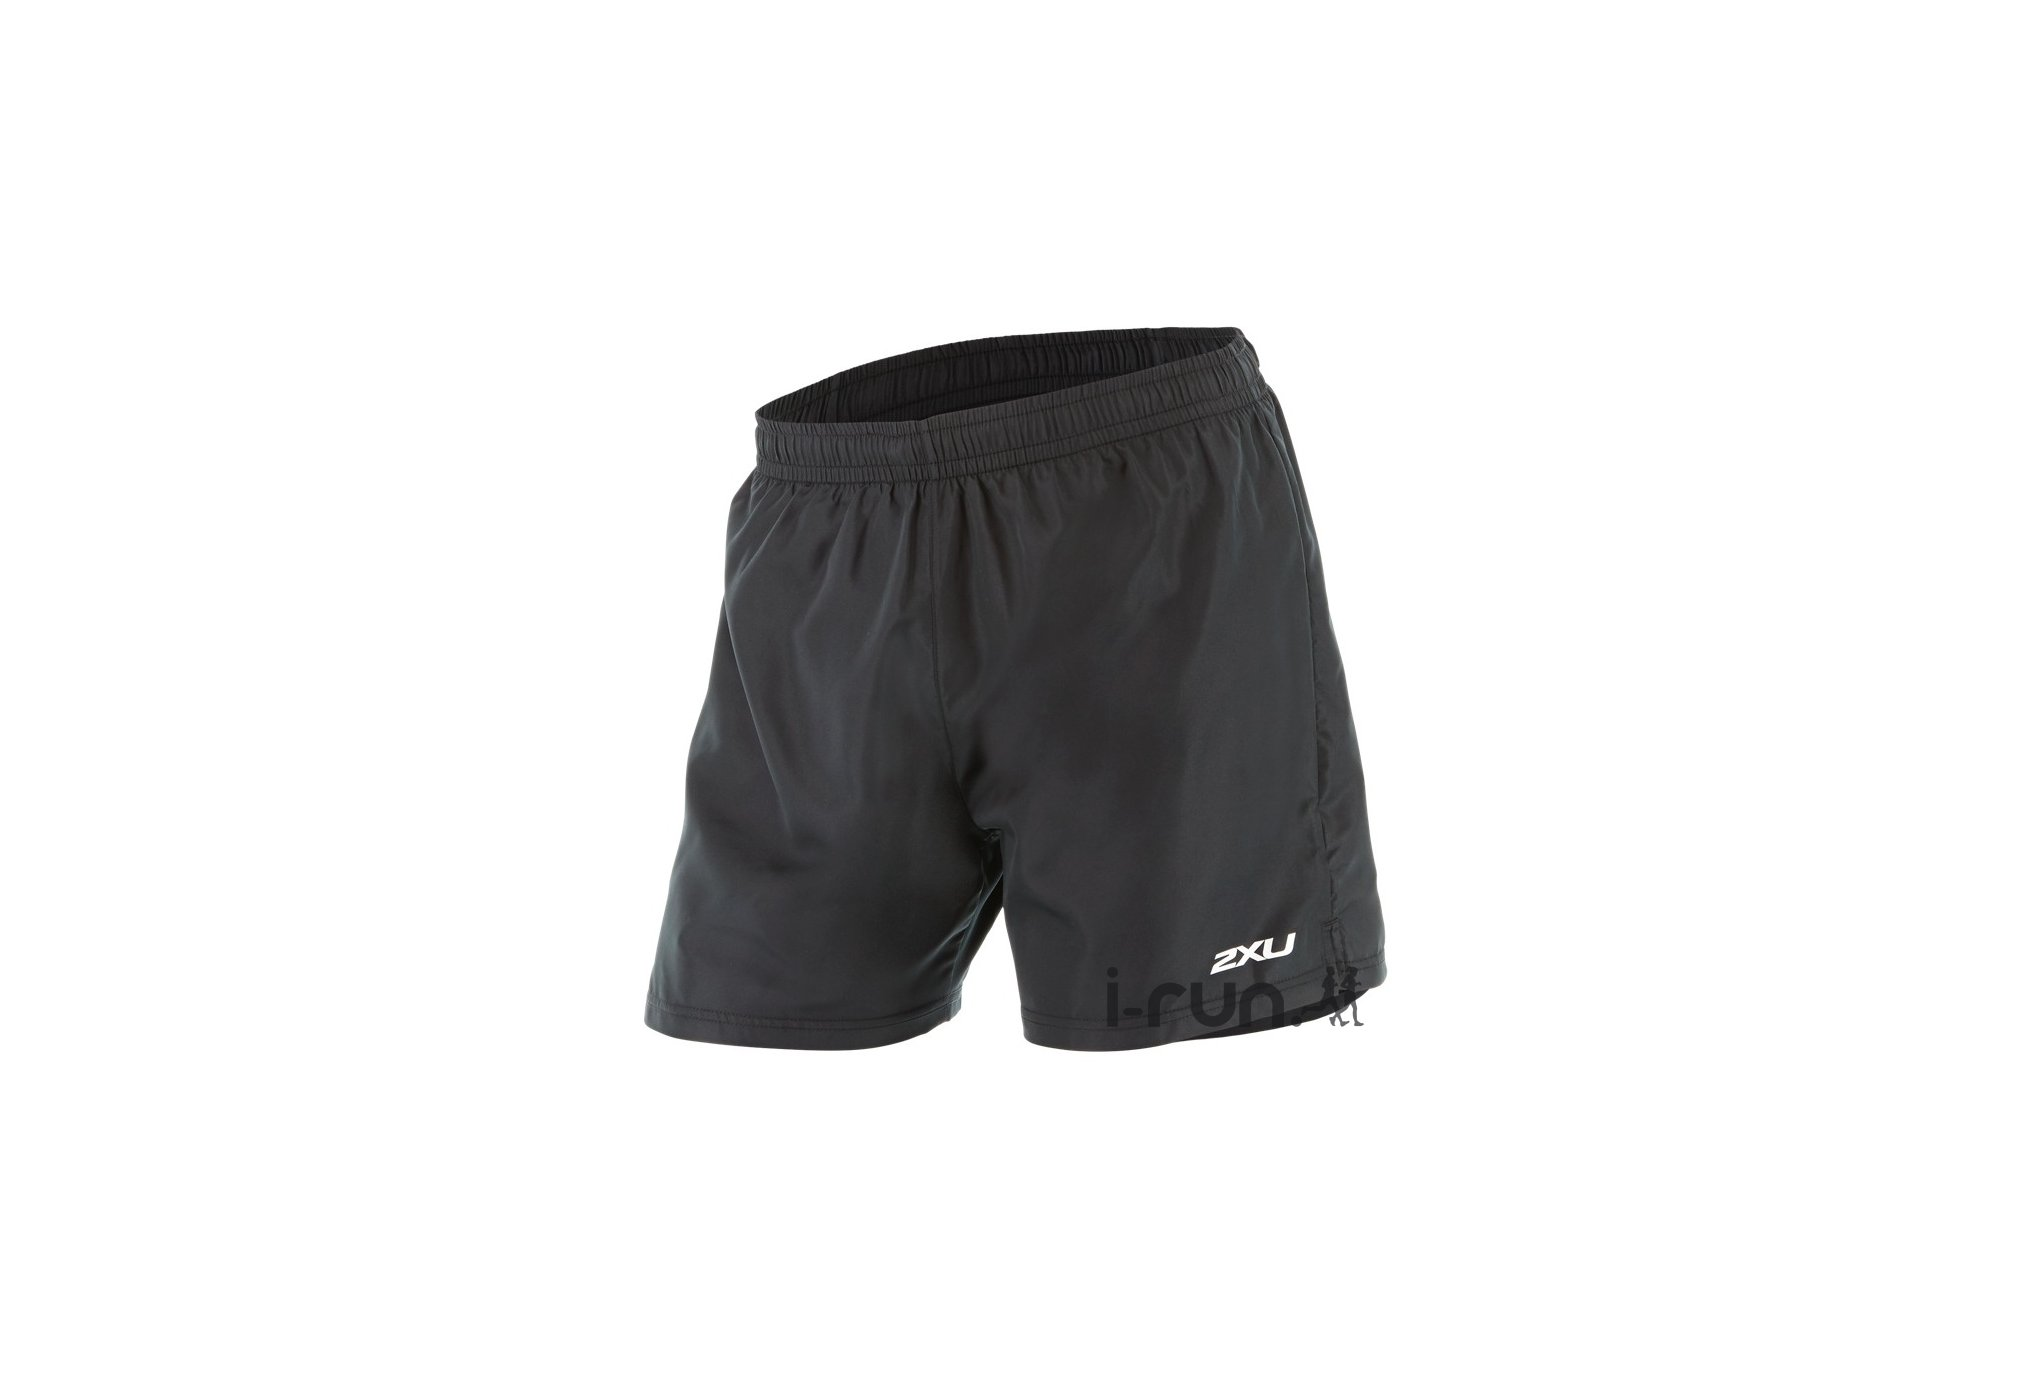 2xu Active run 5 vêtement running homme